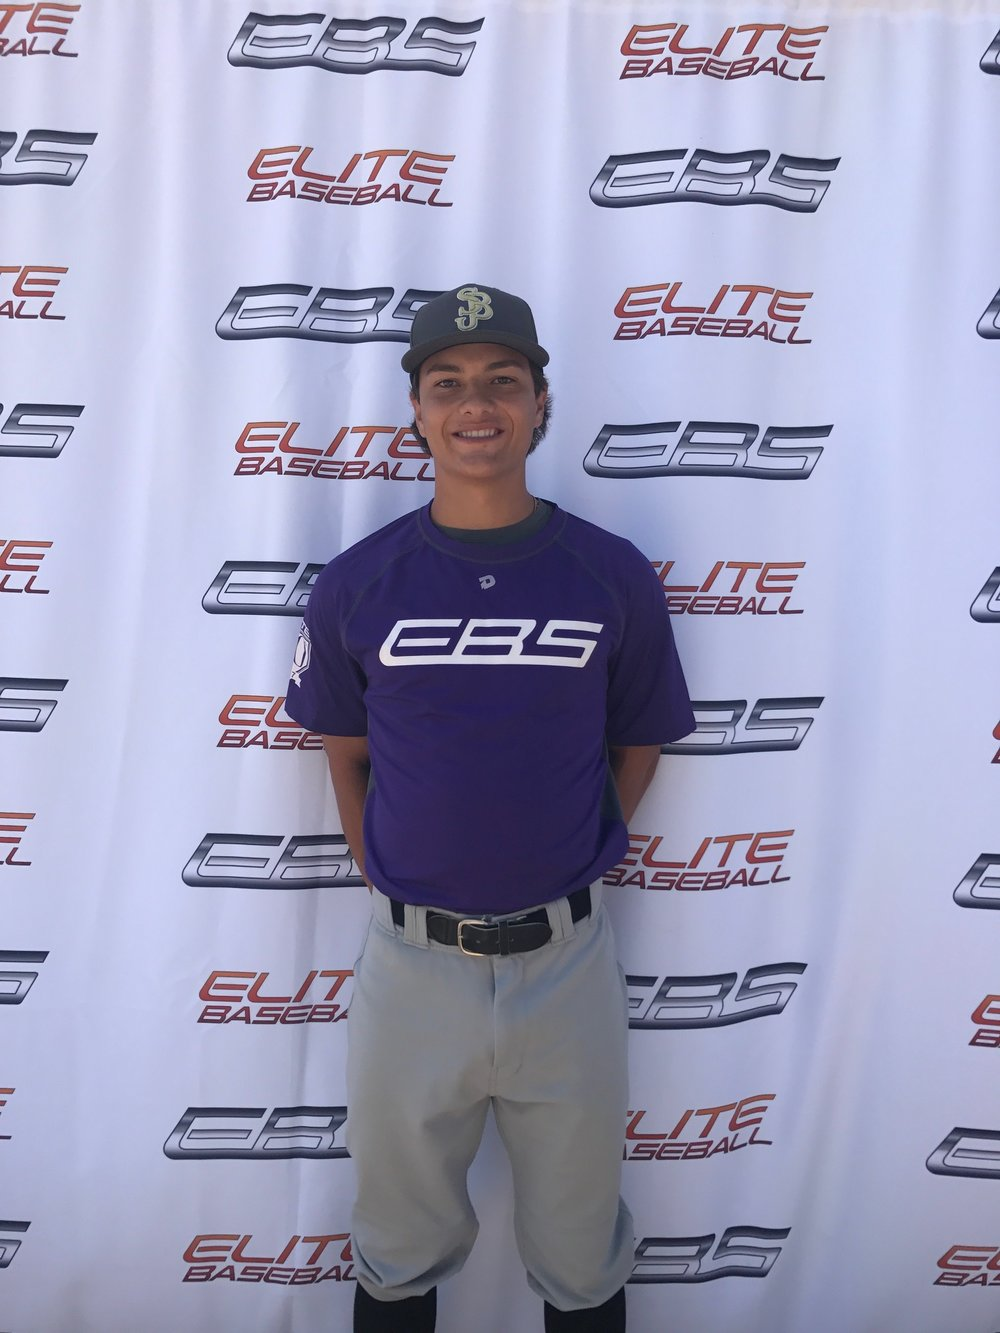 Noah Gomez | 2018 | St. John Bosco | Team California | Abiline Christian